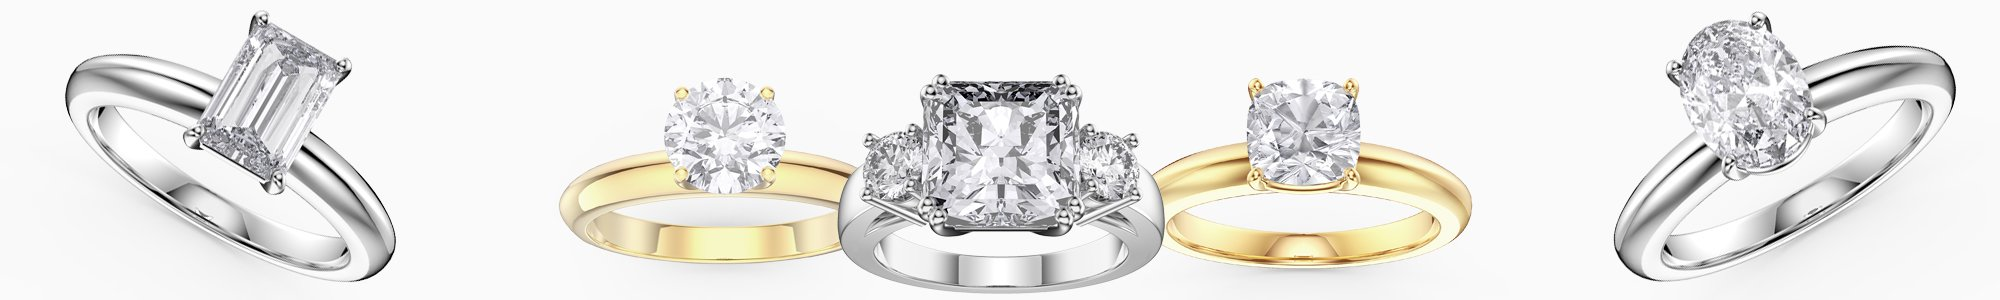 Shop Diamond Solitaire Rings by Jian London. Buy direct and save from our wide selection of Solitaire Rings at the Jian London jewellery Store. Free UK Delivery